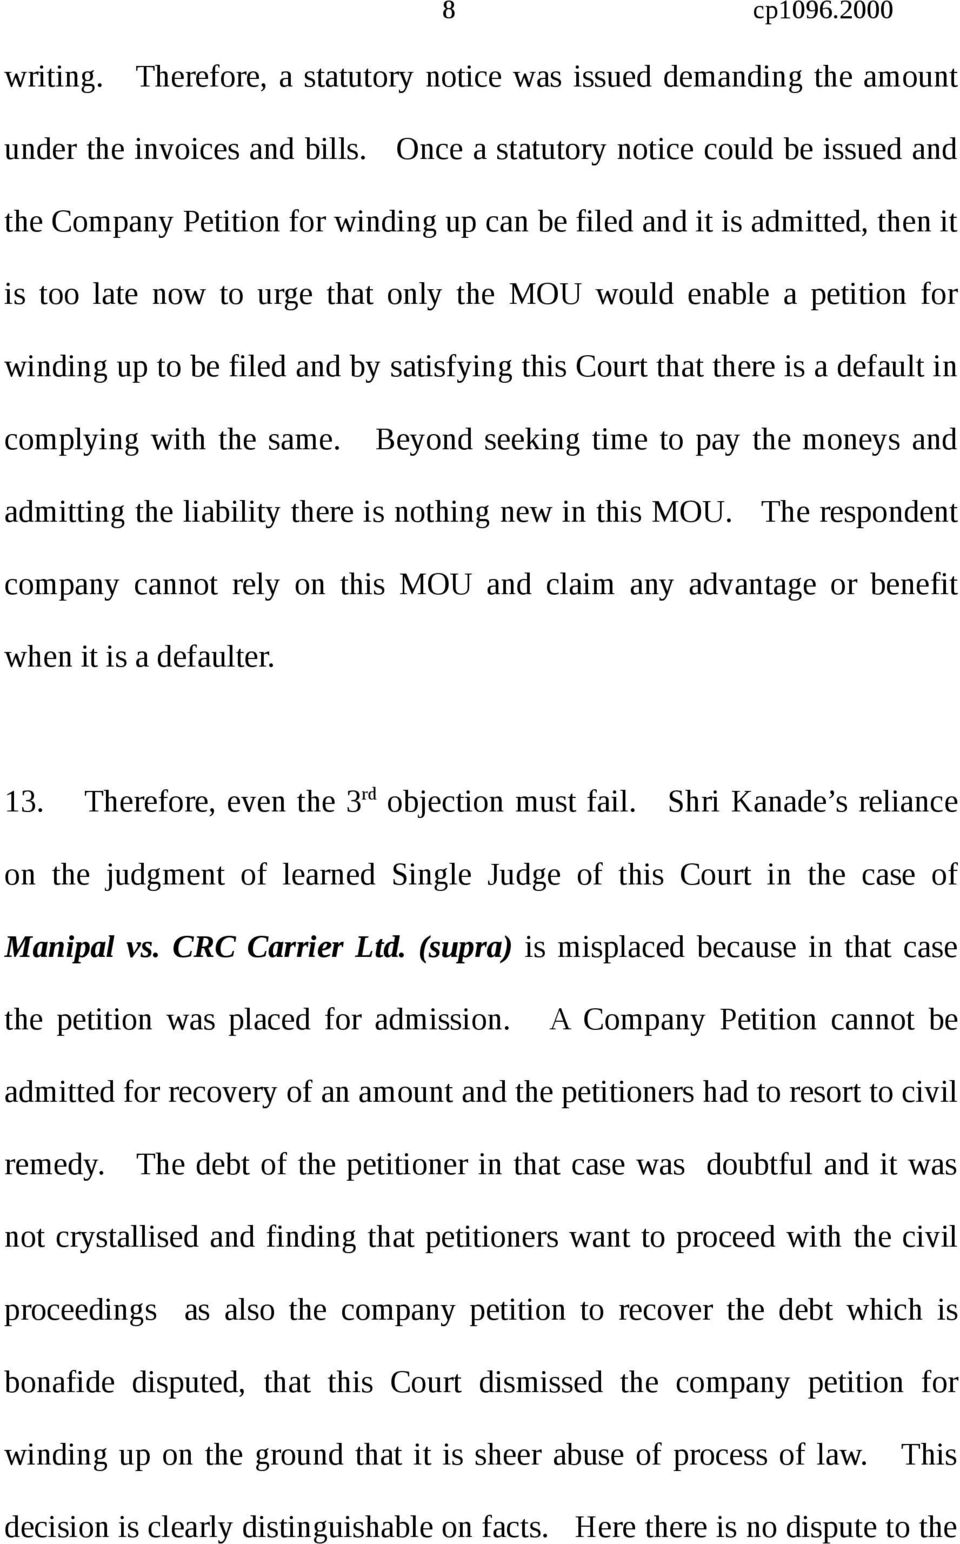 up to be filed and by satisfying this Court that there is a default in complying with the same. Beyond seeking time to pay the moneys and admitting the liability there is nothing new in this MOU.